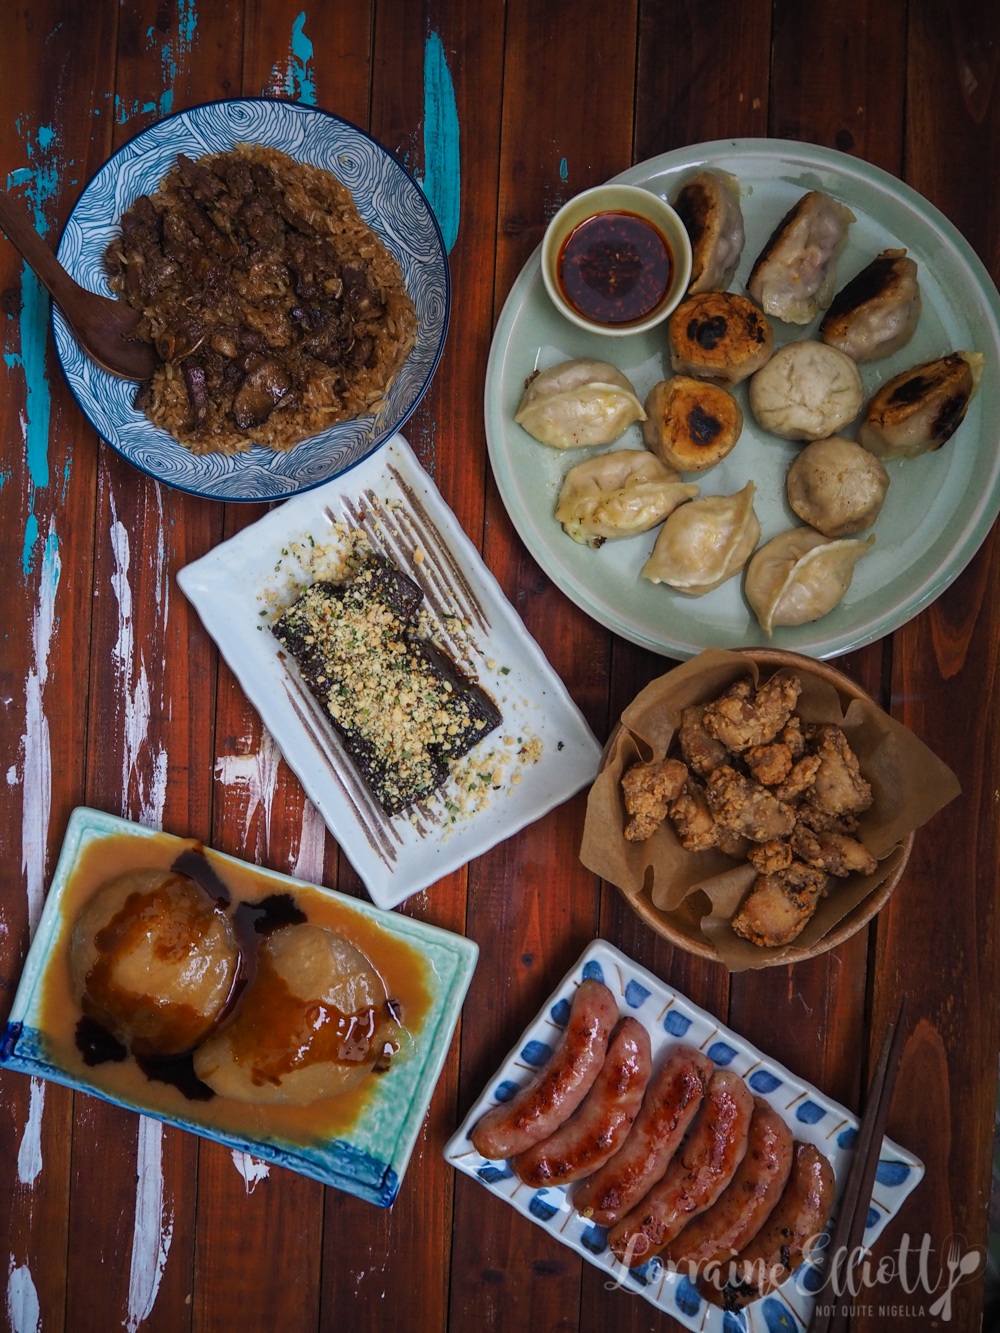 Ommi's Taiwanese Food Delivery